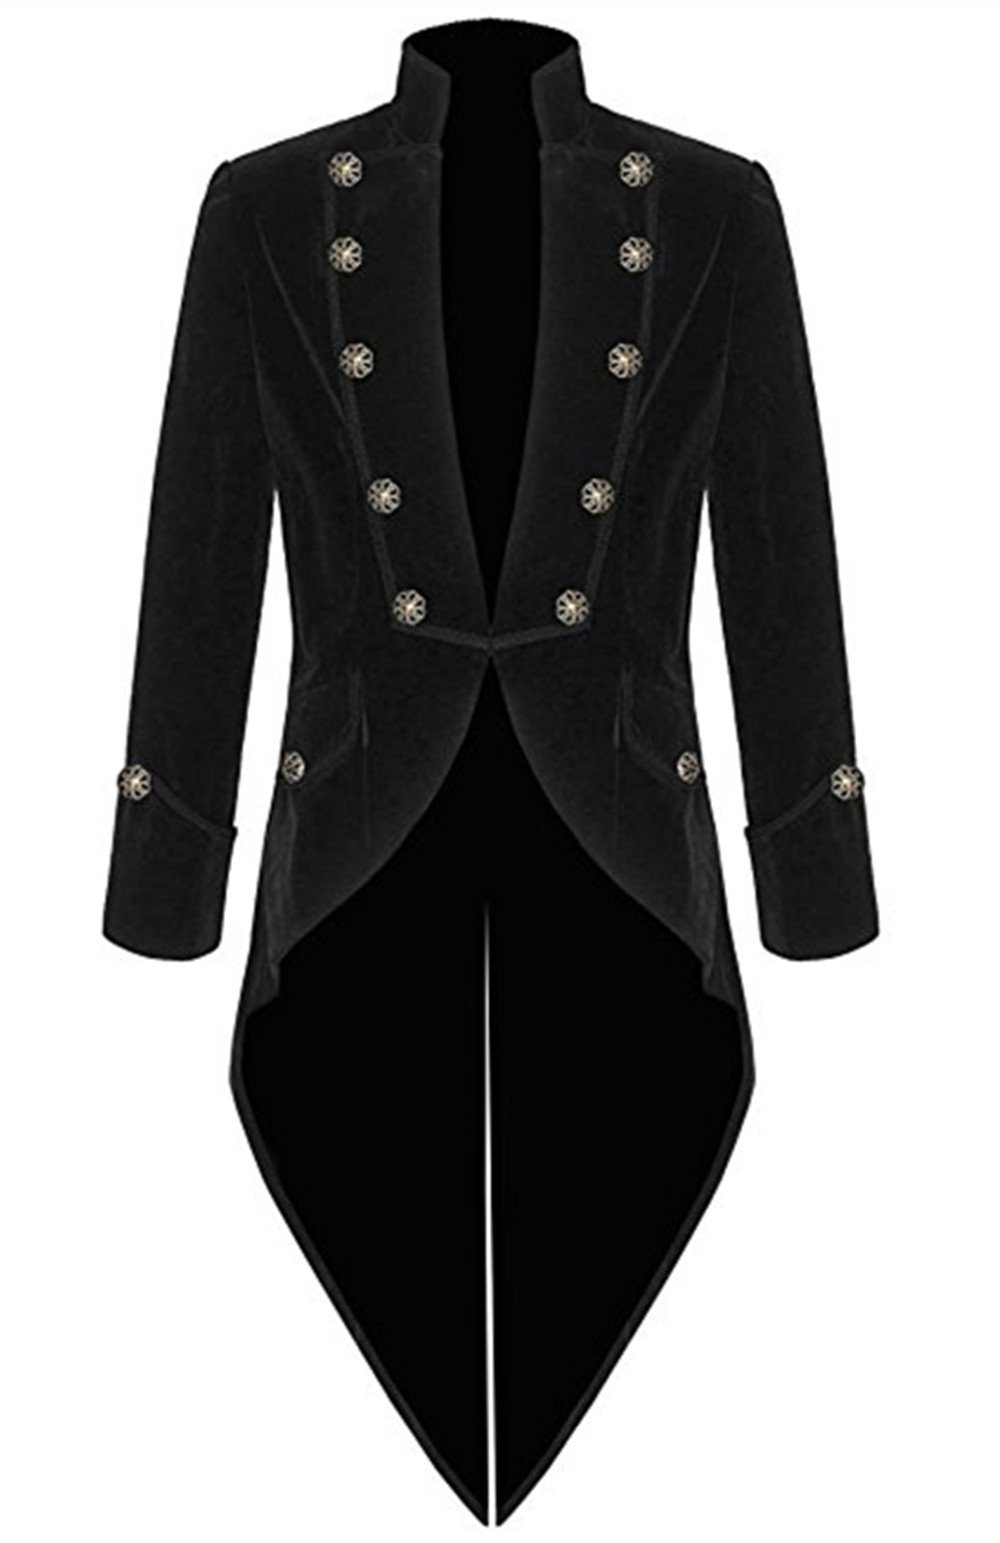 Suxiaoxi Blazer for Men Big and Tall Stylish Velvet Long Steampunk Jackets Men's Formal Gothic Victorian 3